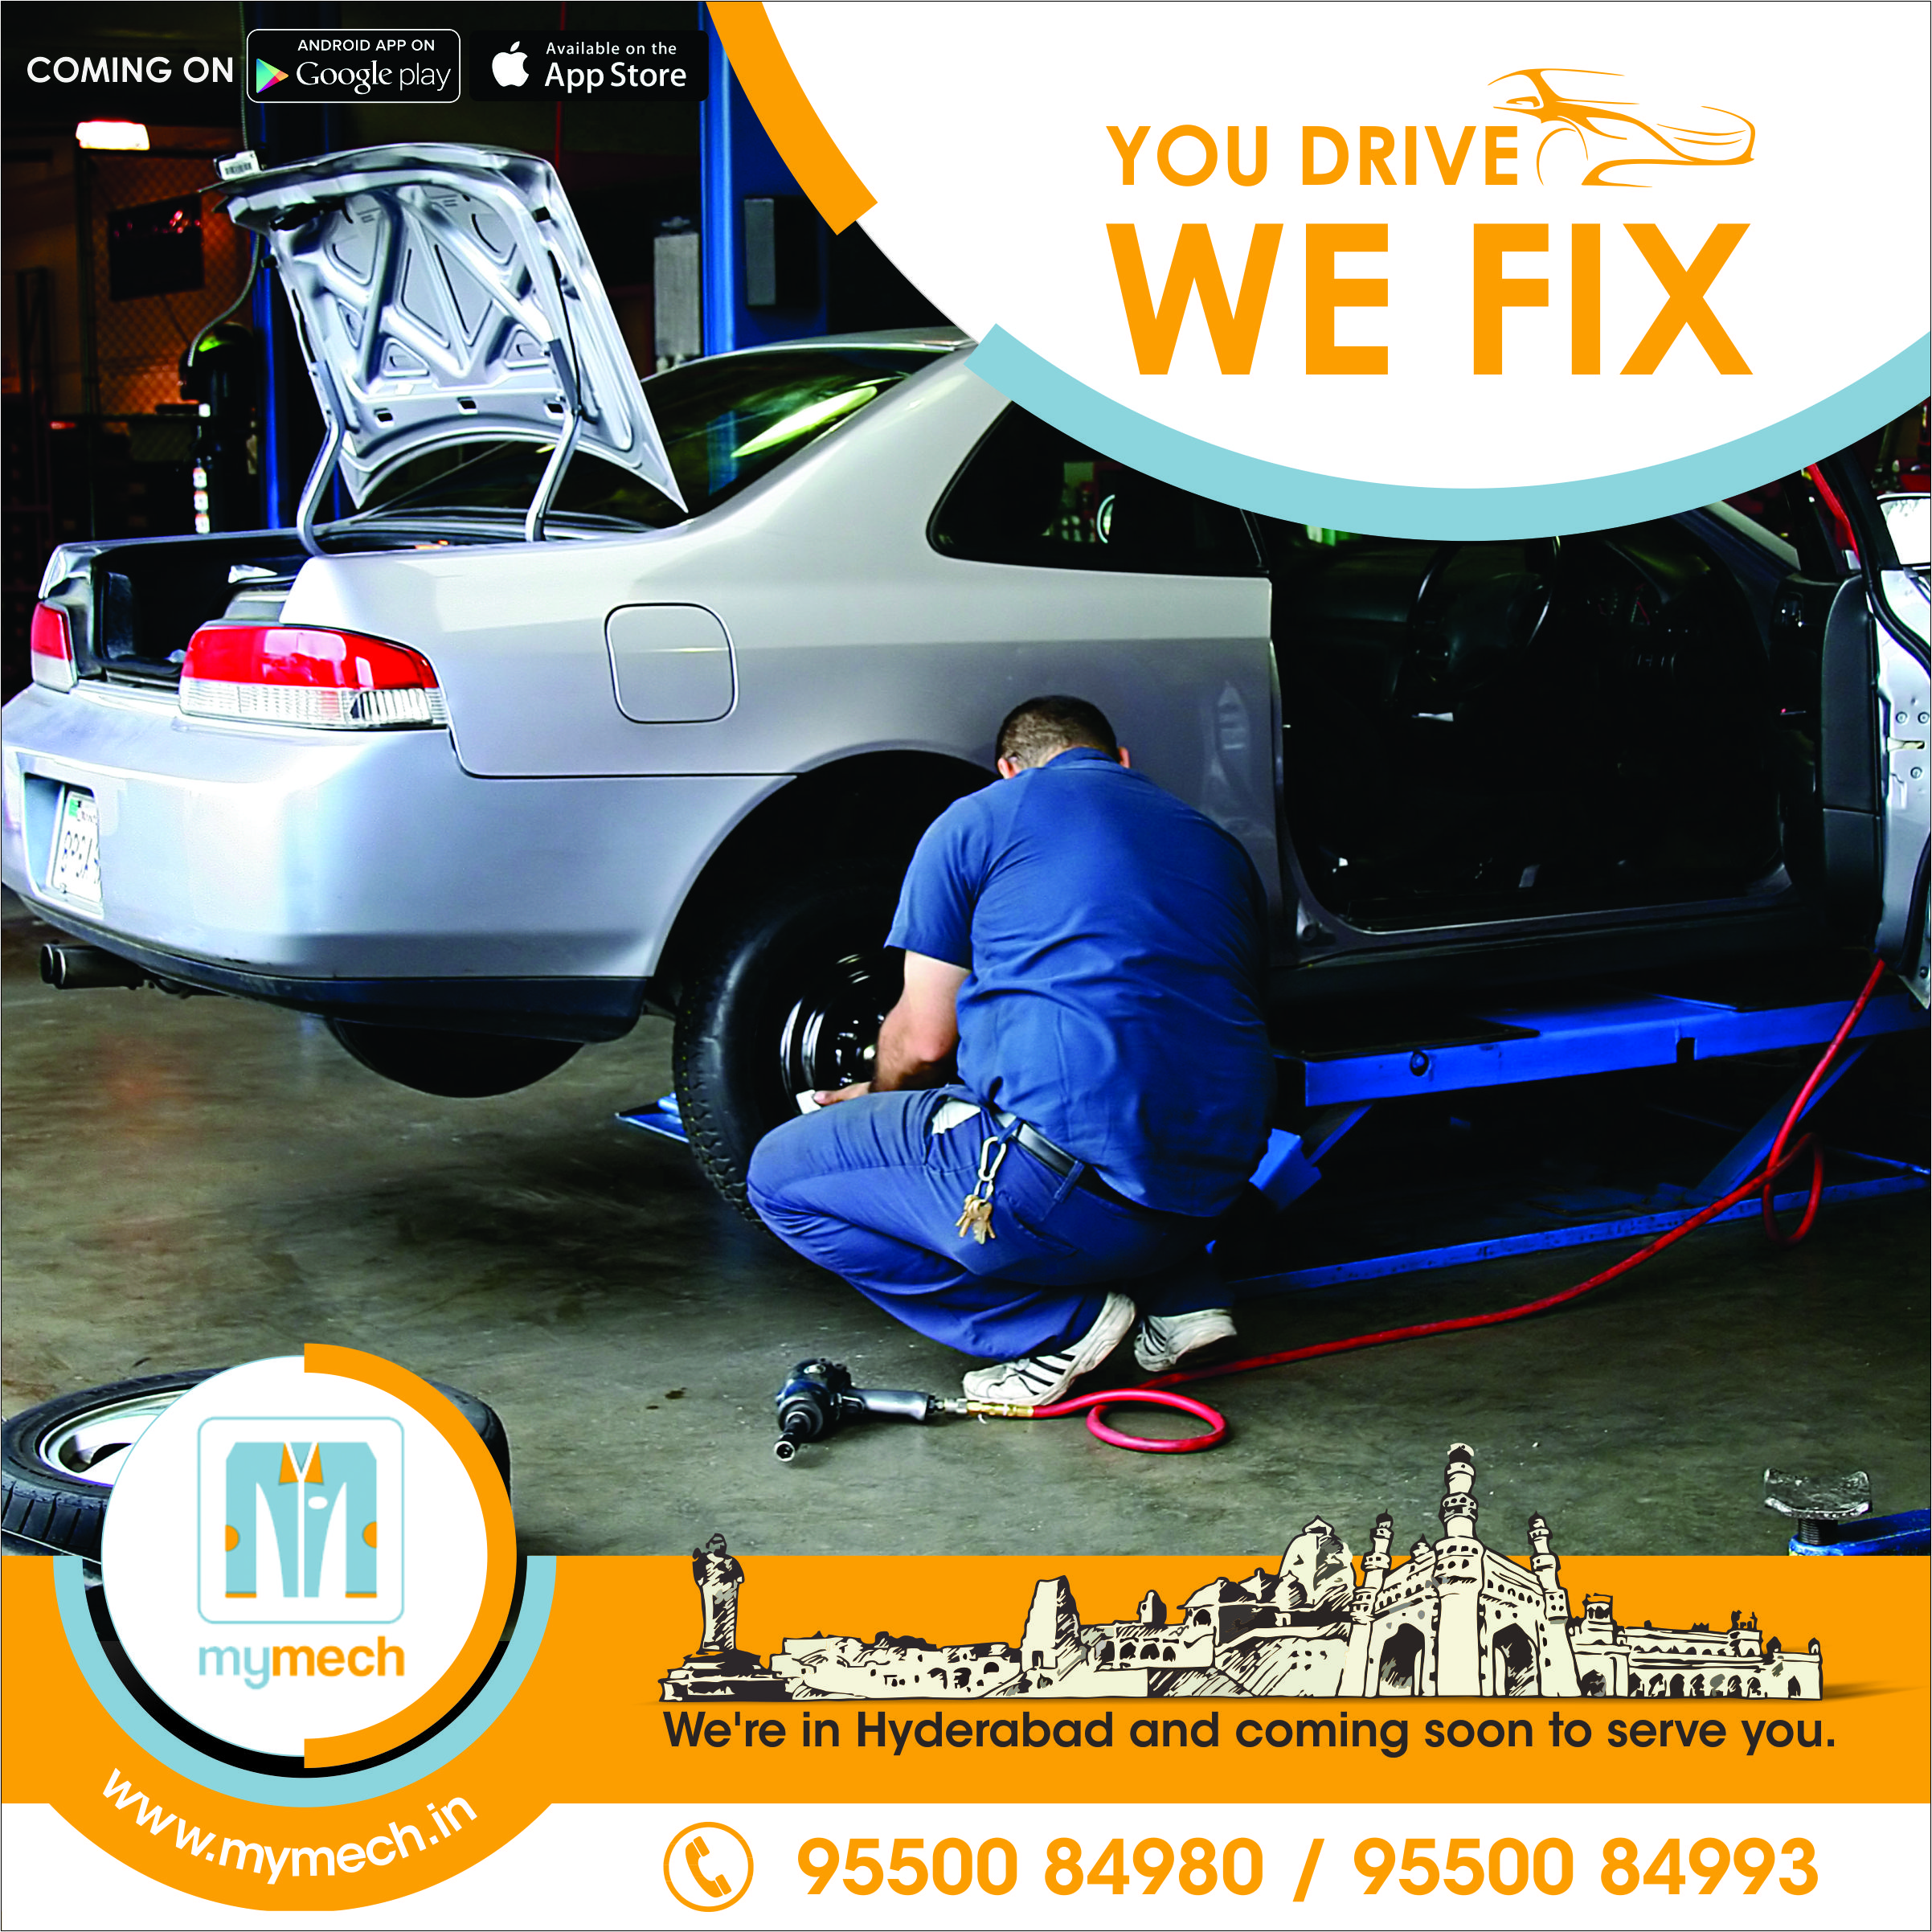 Service your multi branded Car with multi repair services at mymech